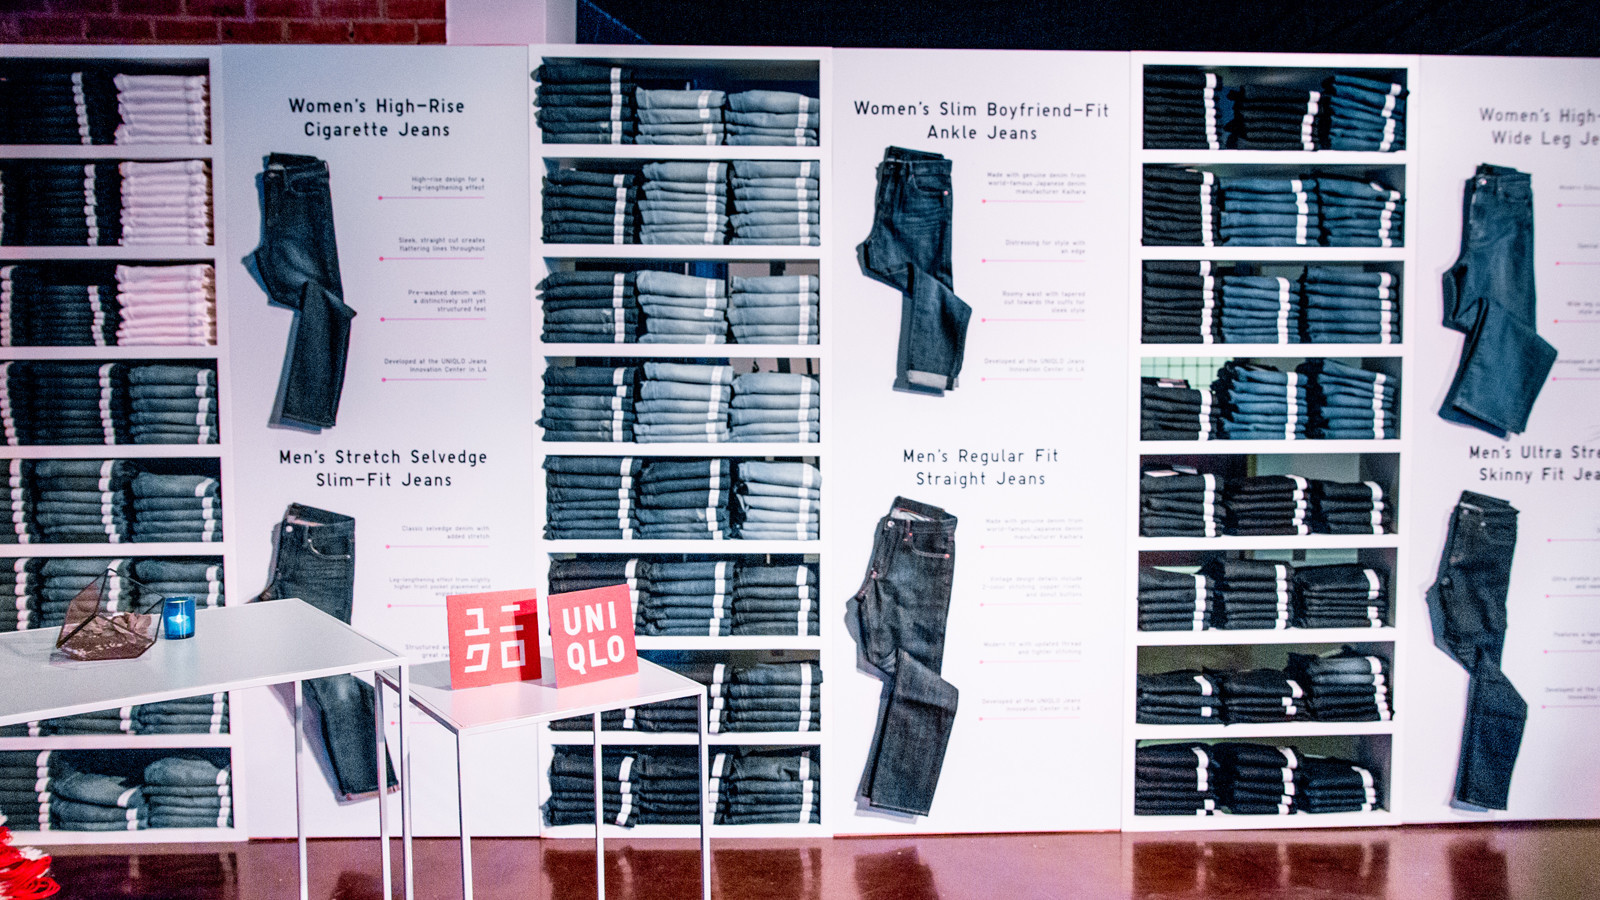 A look at the denim wall at Uniqlo's #DedicatedToDenim event in Hollywood on Sept. 19, 2017.